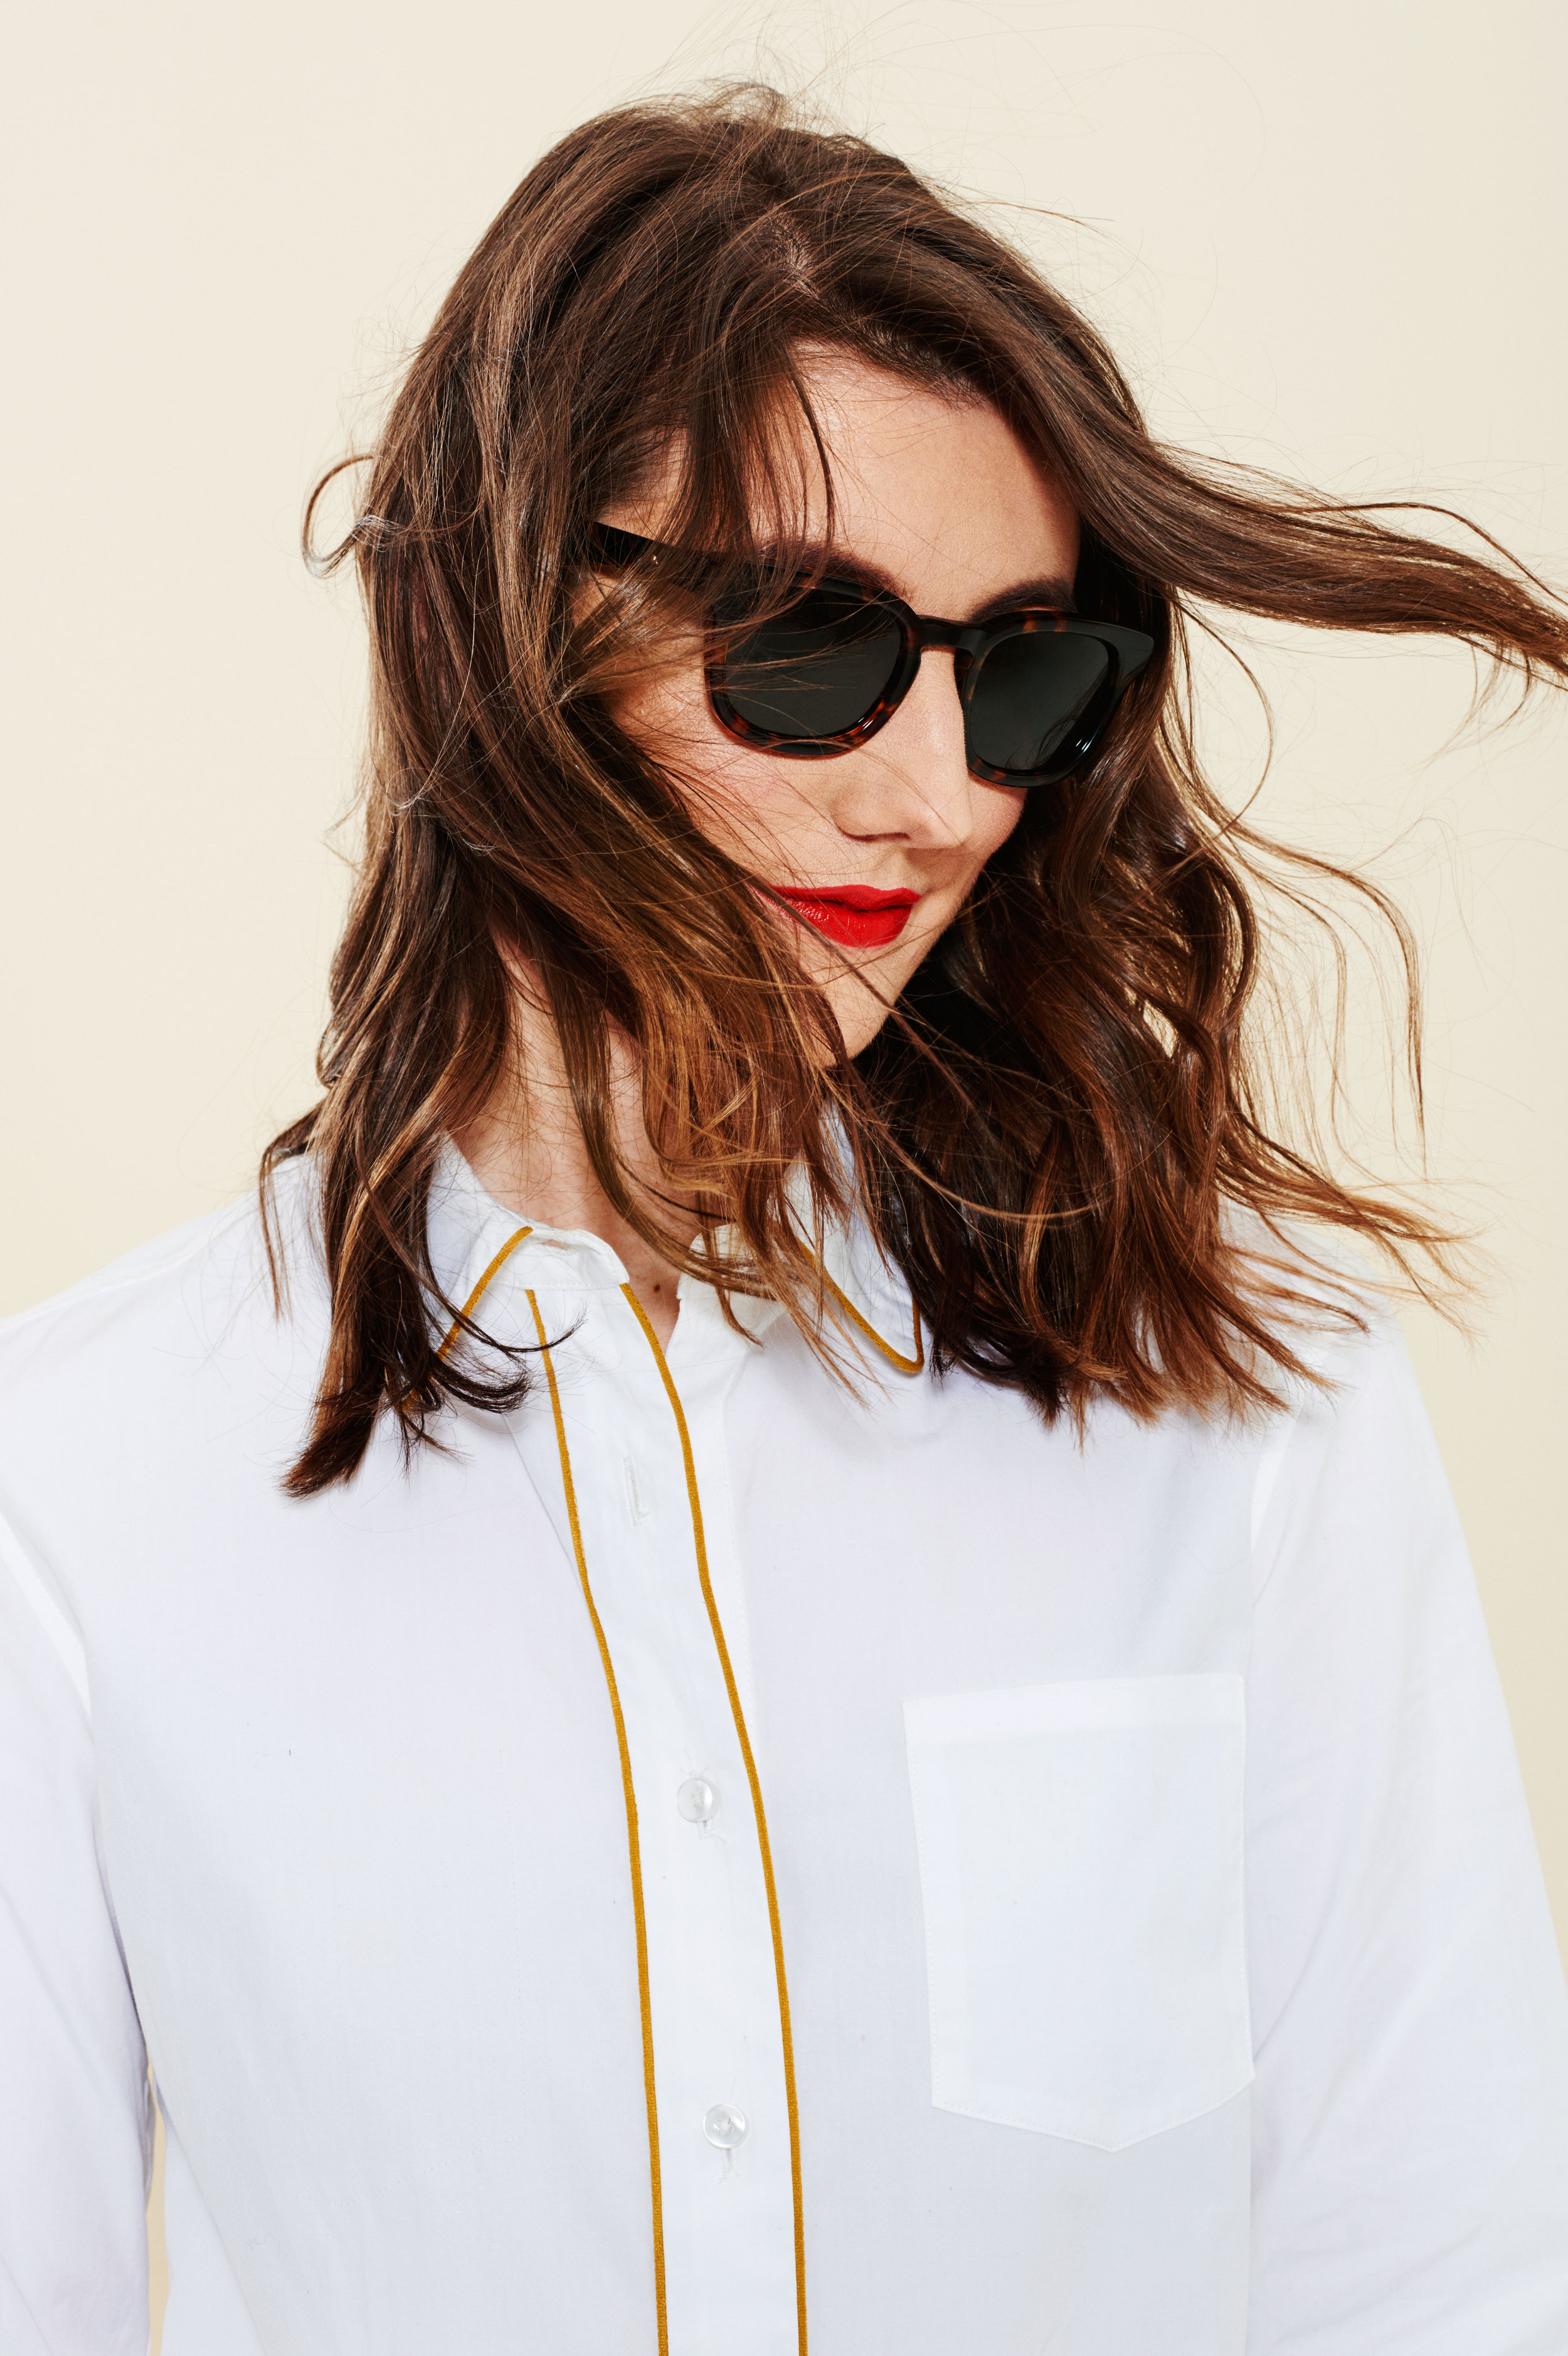 Sunglasses and Lipstick Are All You Need for Perfect Spring Style